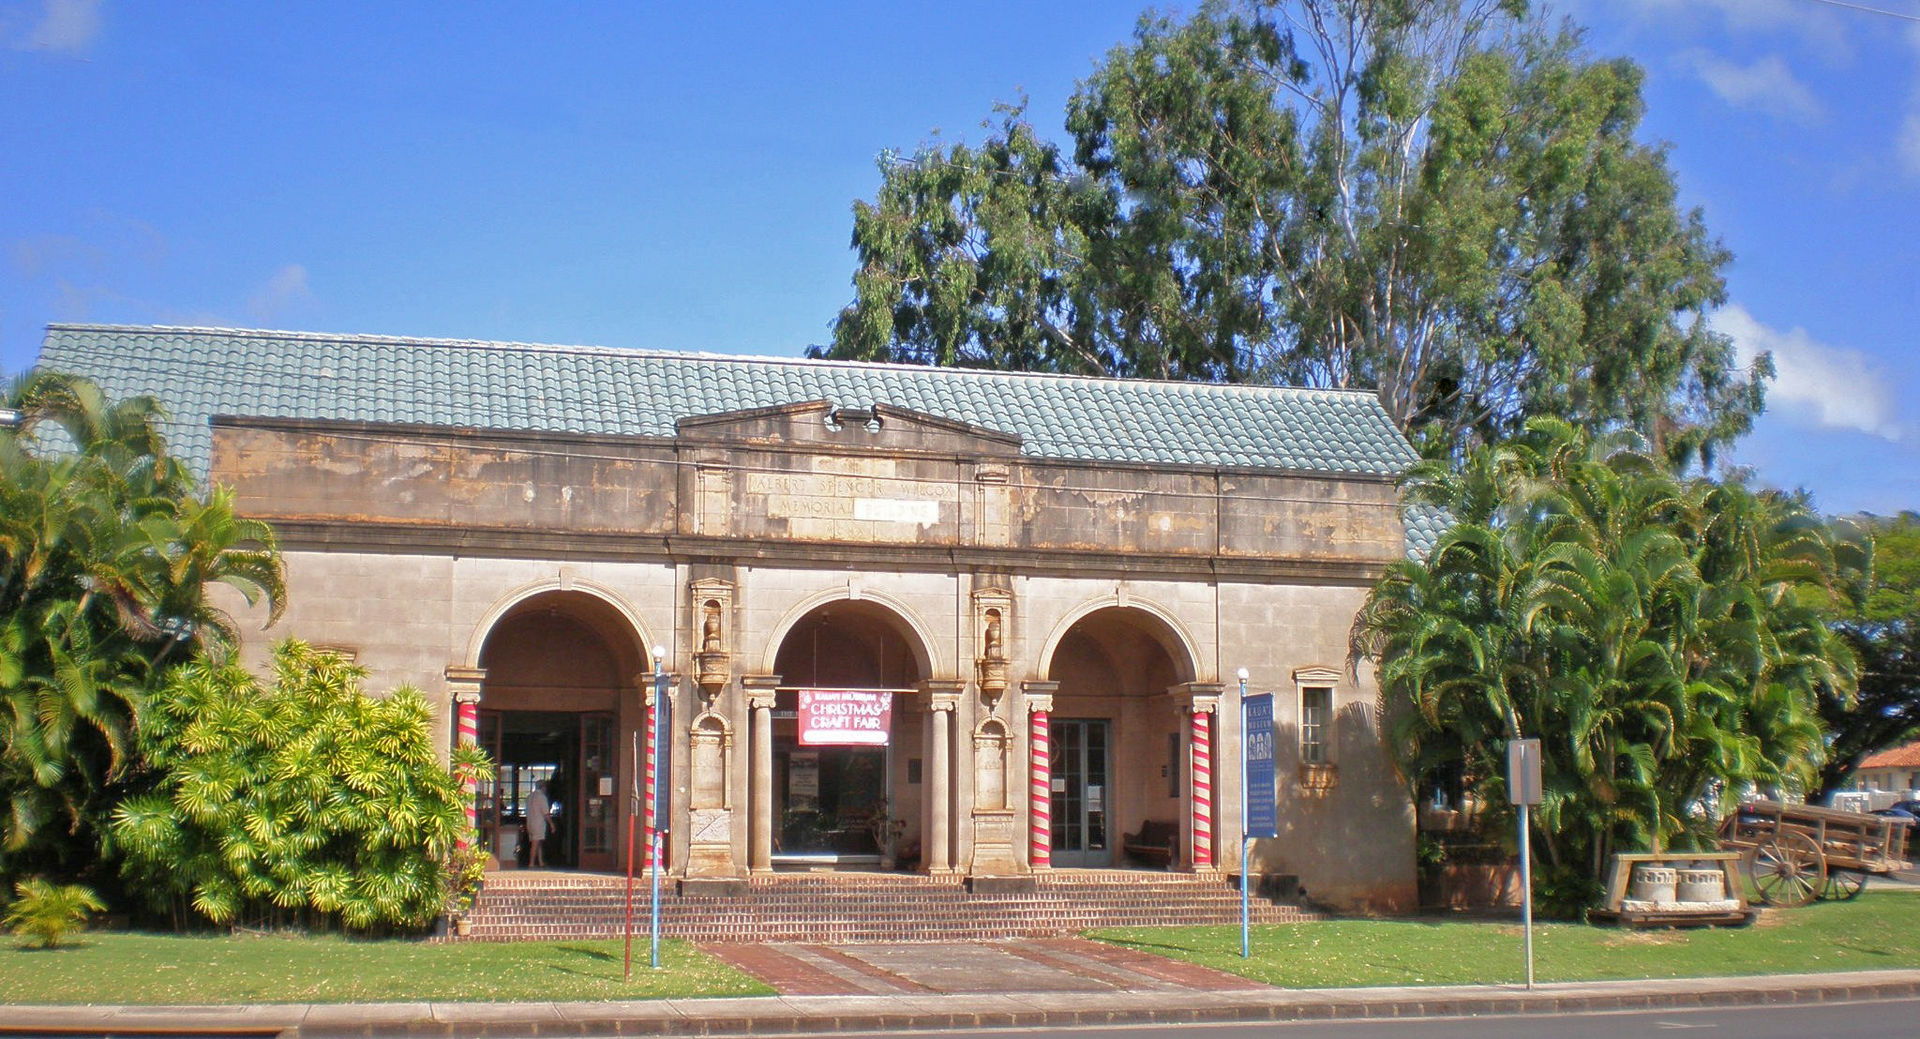 Kauai Museum, formerly the Wilcox Library.